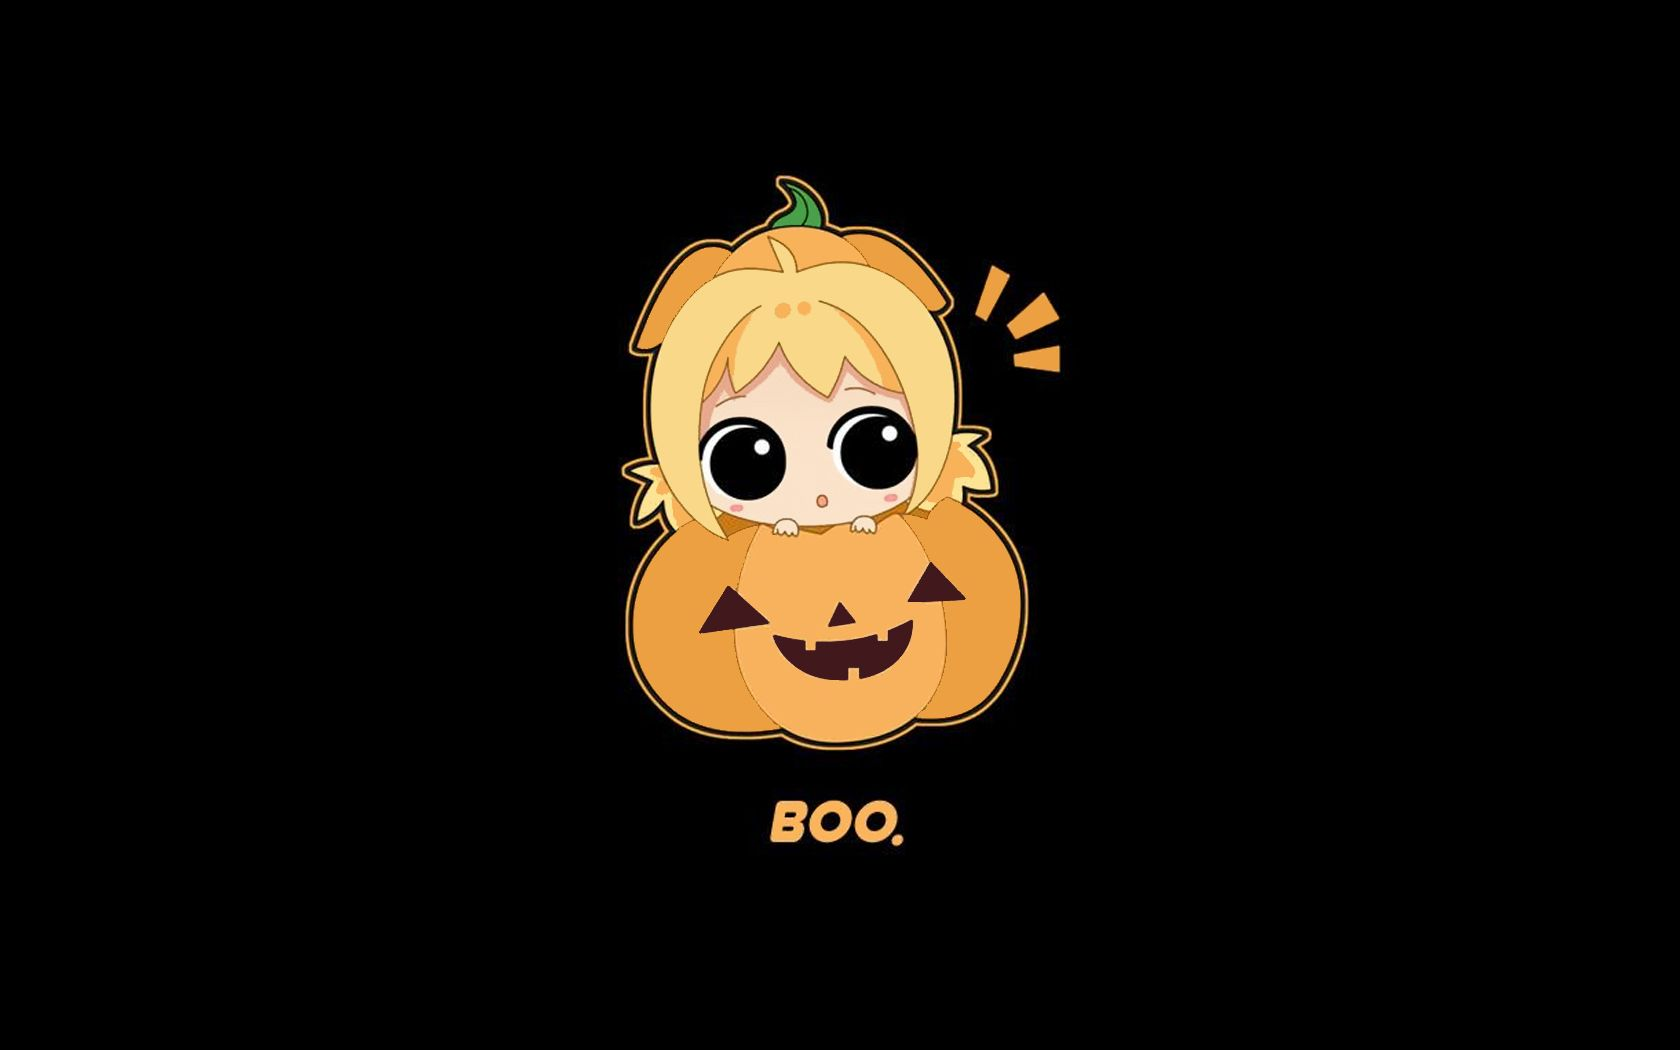 Pin By Chelsijo Mildenberger On Halloween Anime Halloween Wallpaper Halloween Desktop Wallpaper Cute Wallpapers